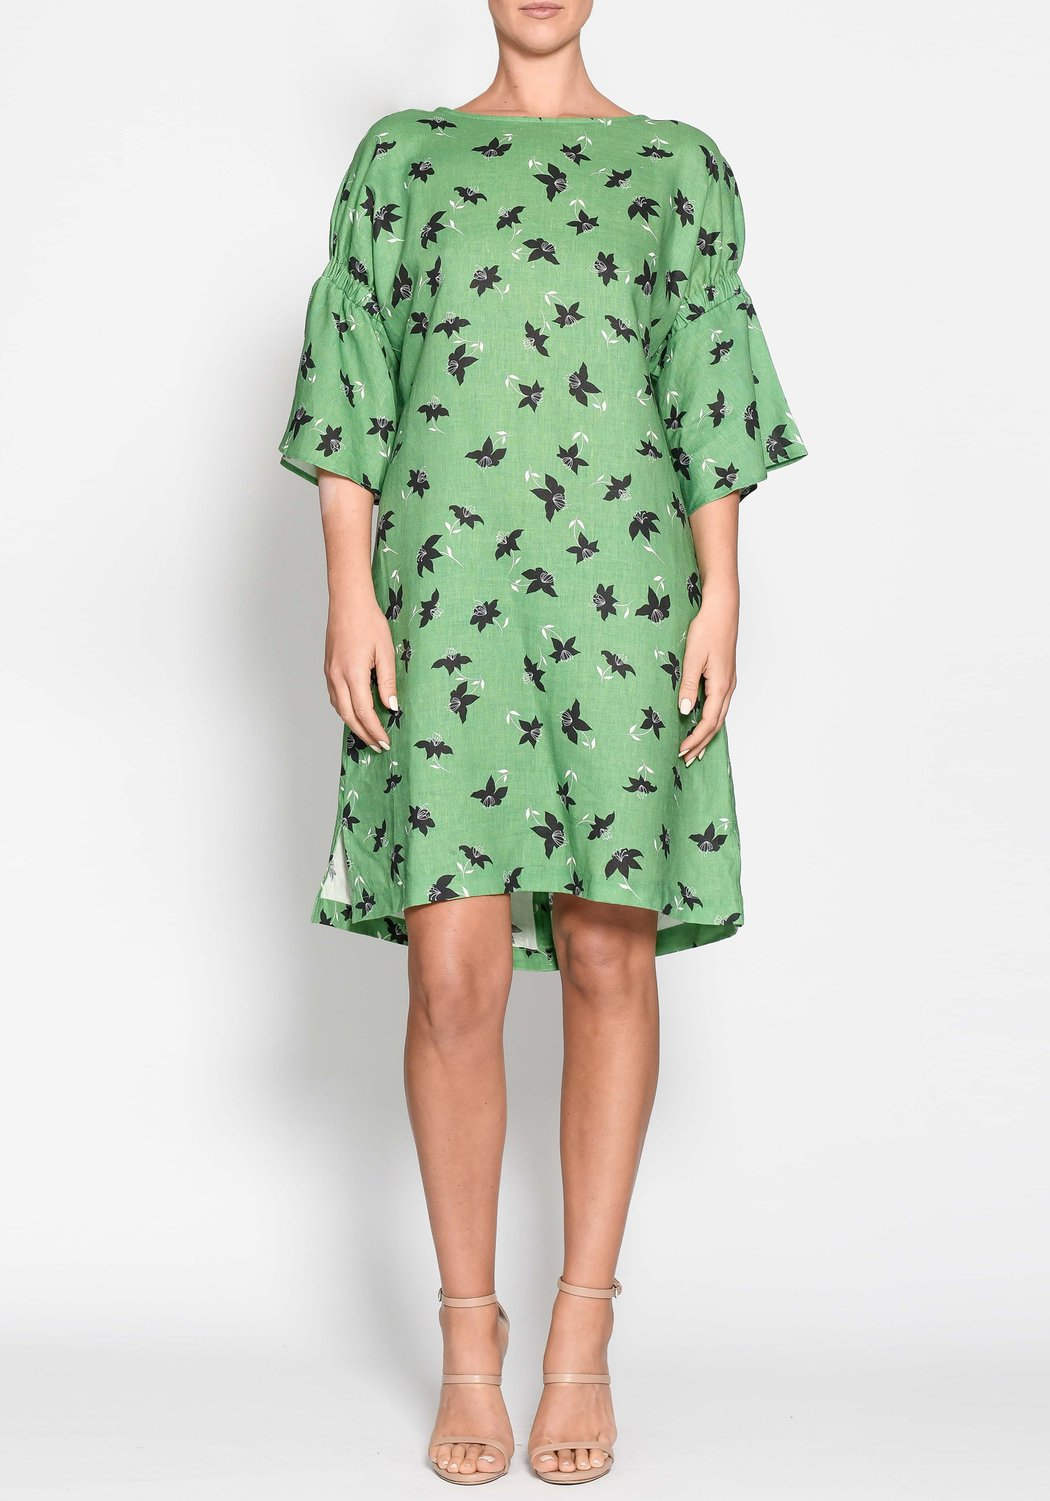 Lido Tunic Dress - Green Floral